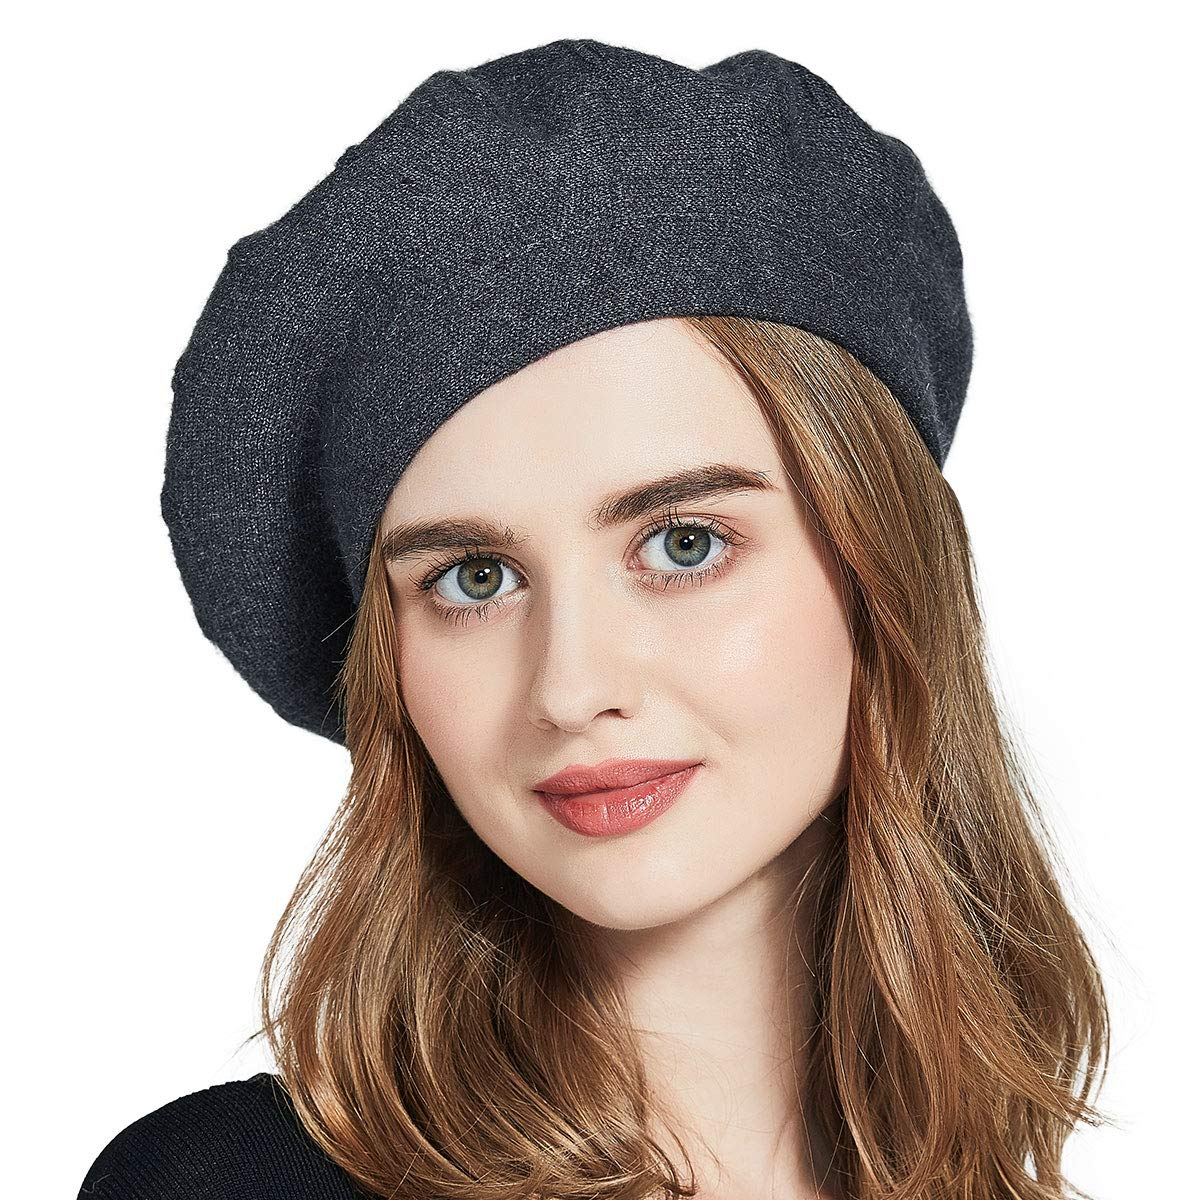 ENJOYFUR Berets for Women,French Style Solid Color Beret Hats,Lightweight Classic Wool Beret for Women,Stretchable Artist Hat